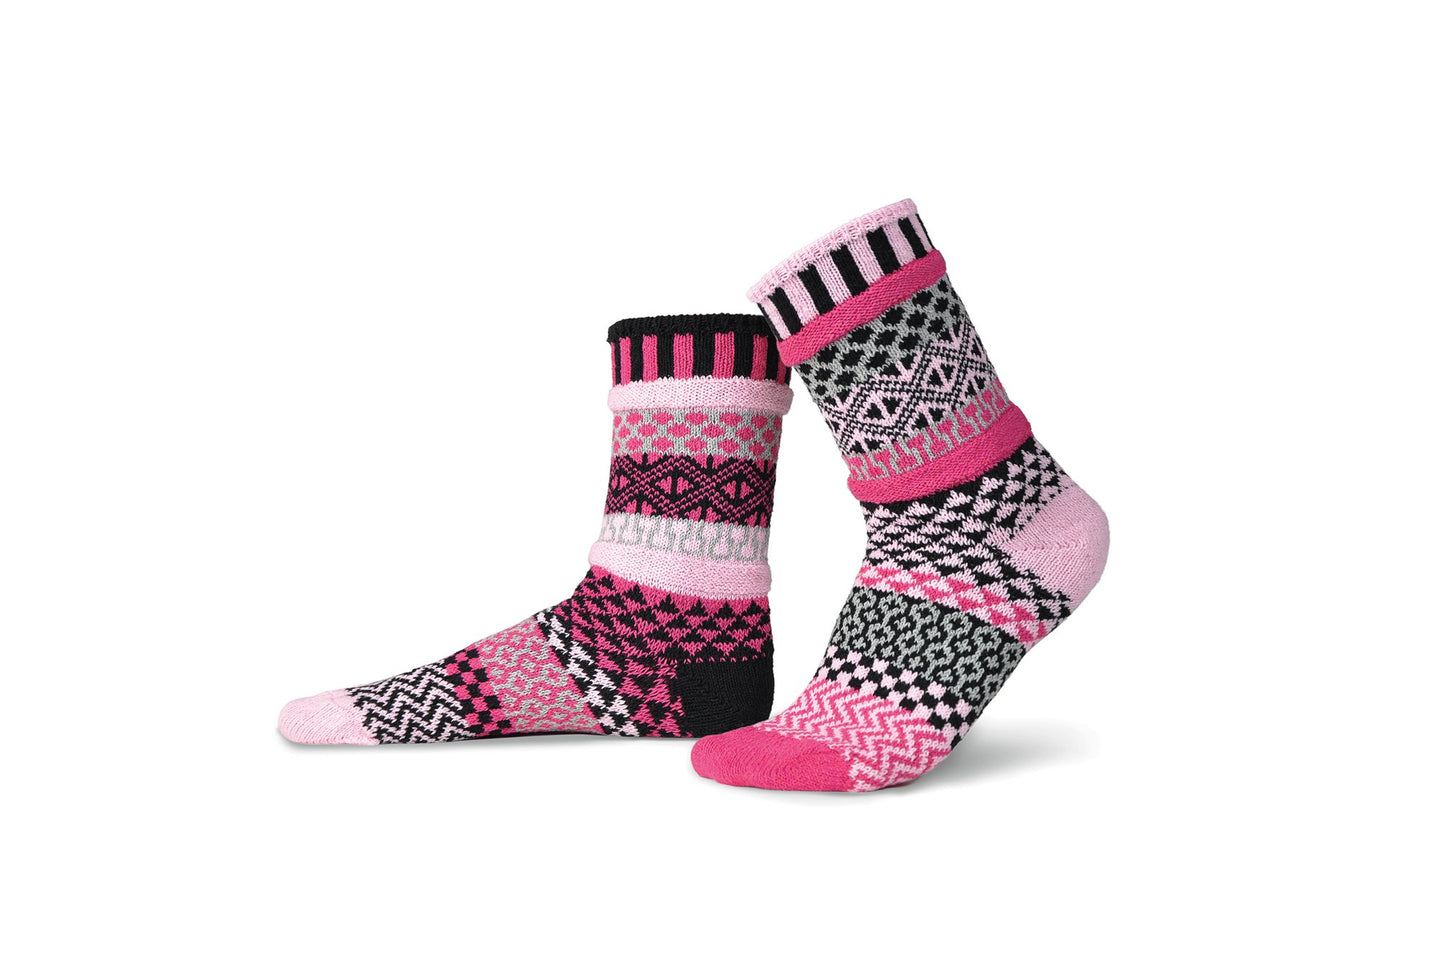 Solmate socks Venus in black, white, rose pink and pale pink, and light grey.